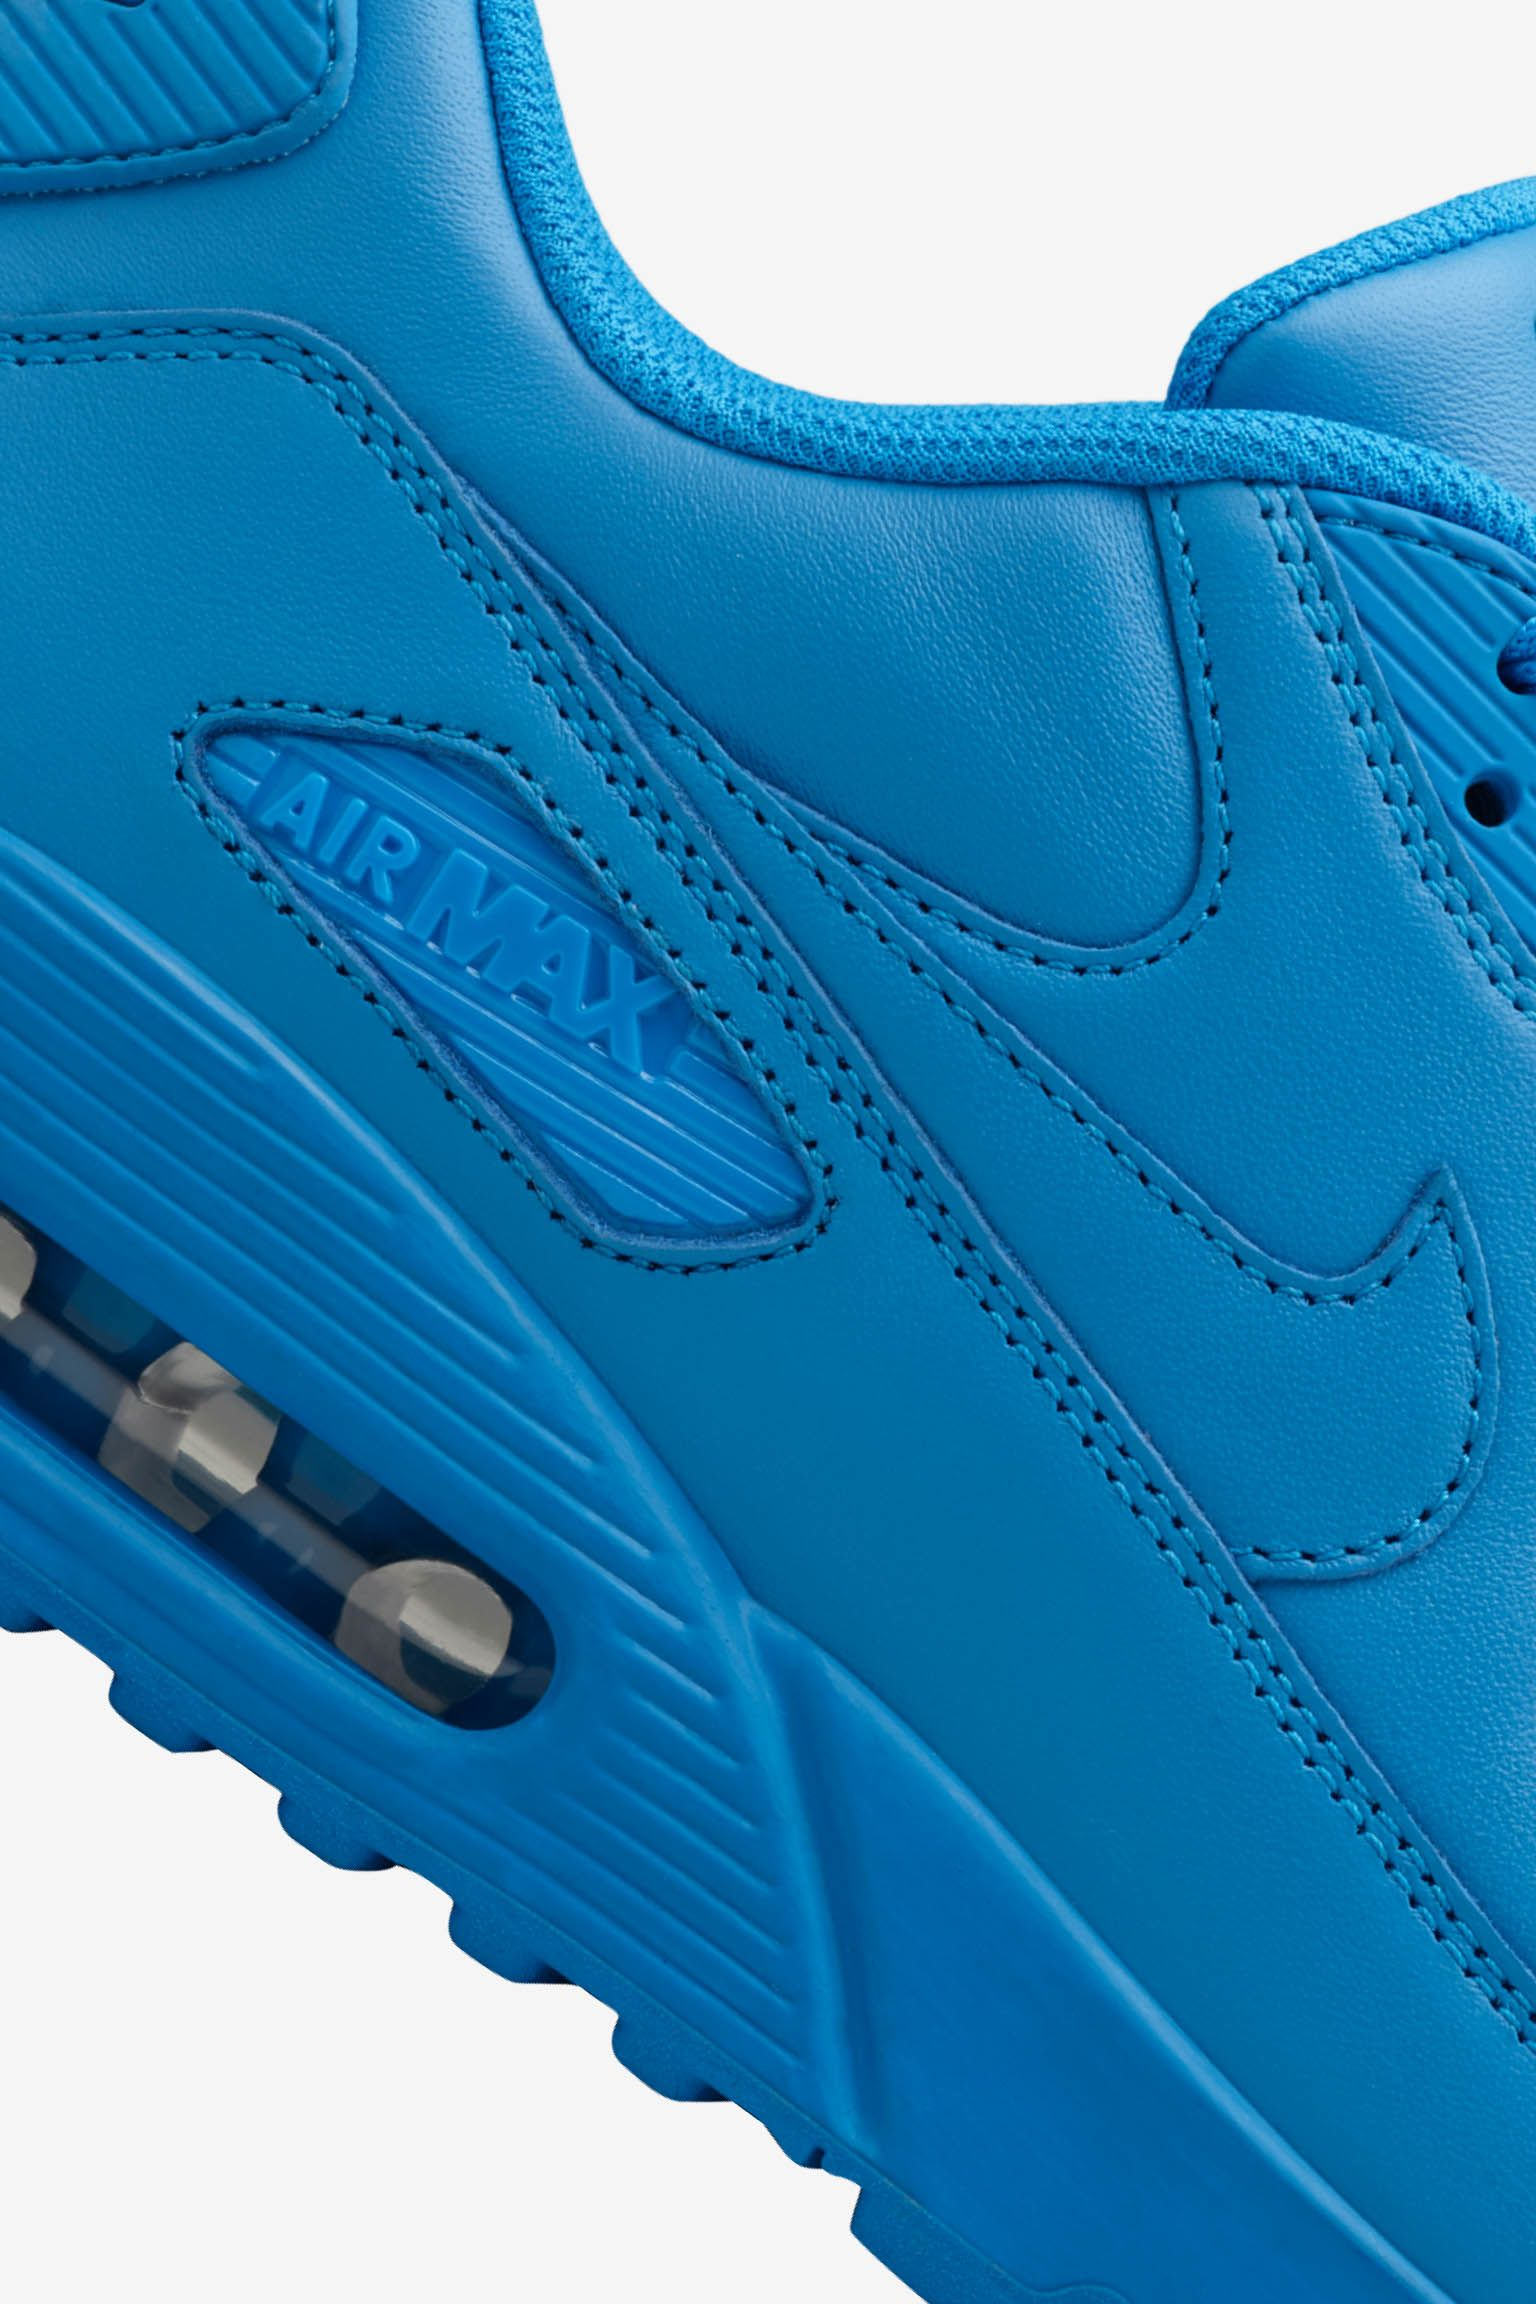 Nike Air Max 90 iD 'I Am KD'